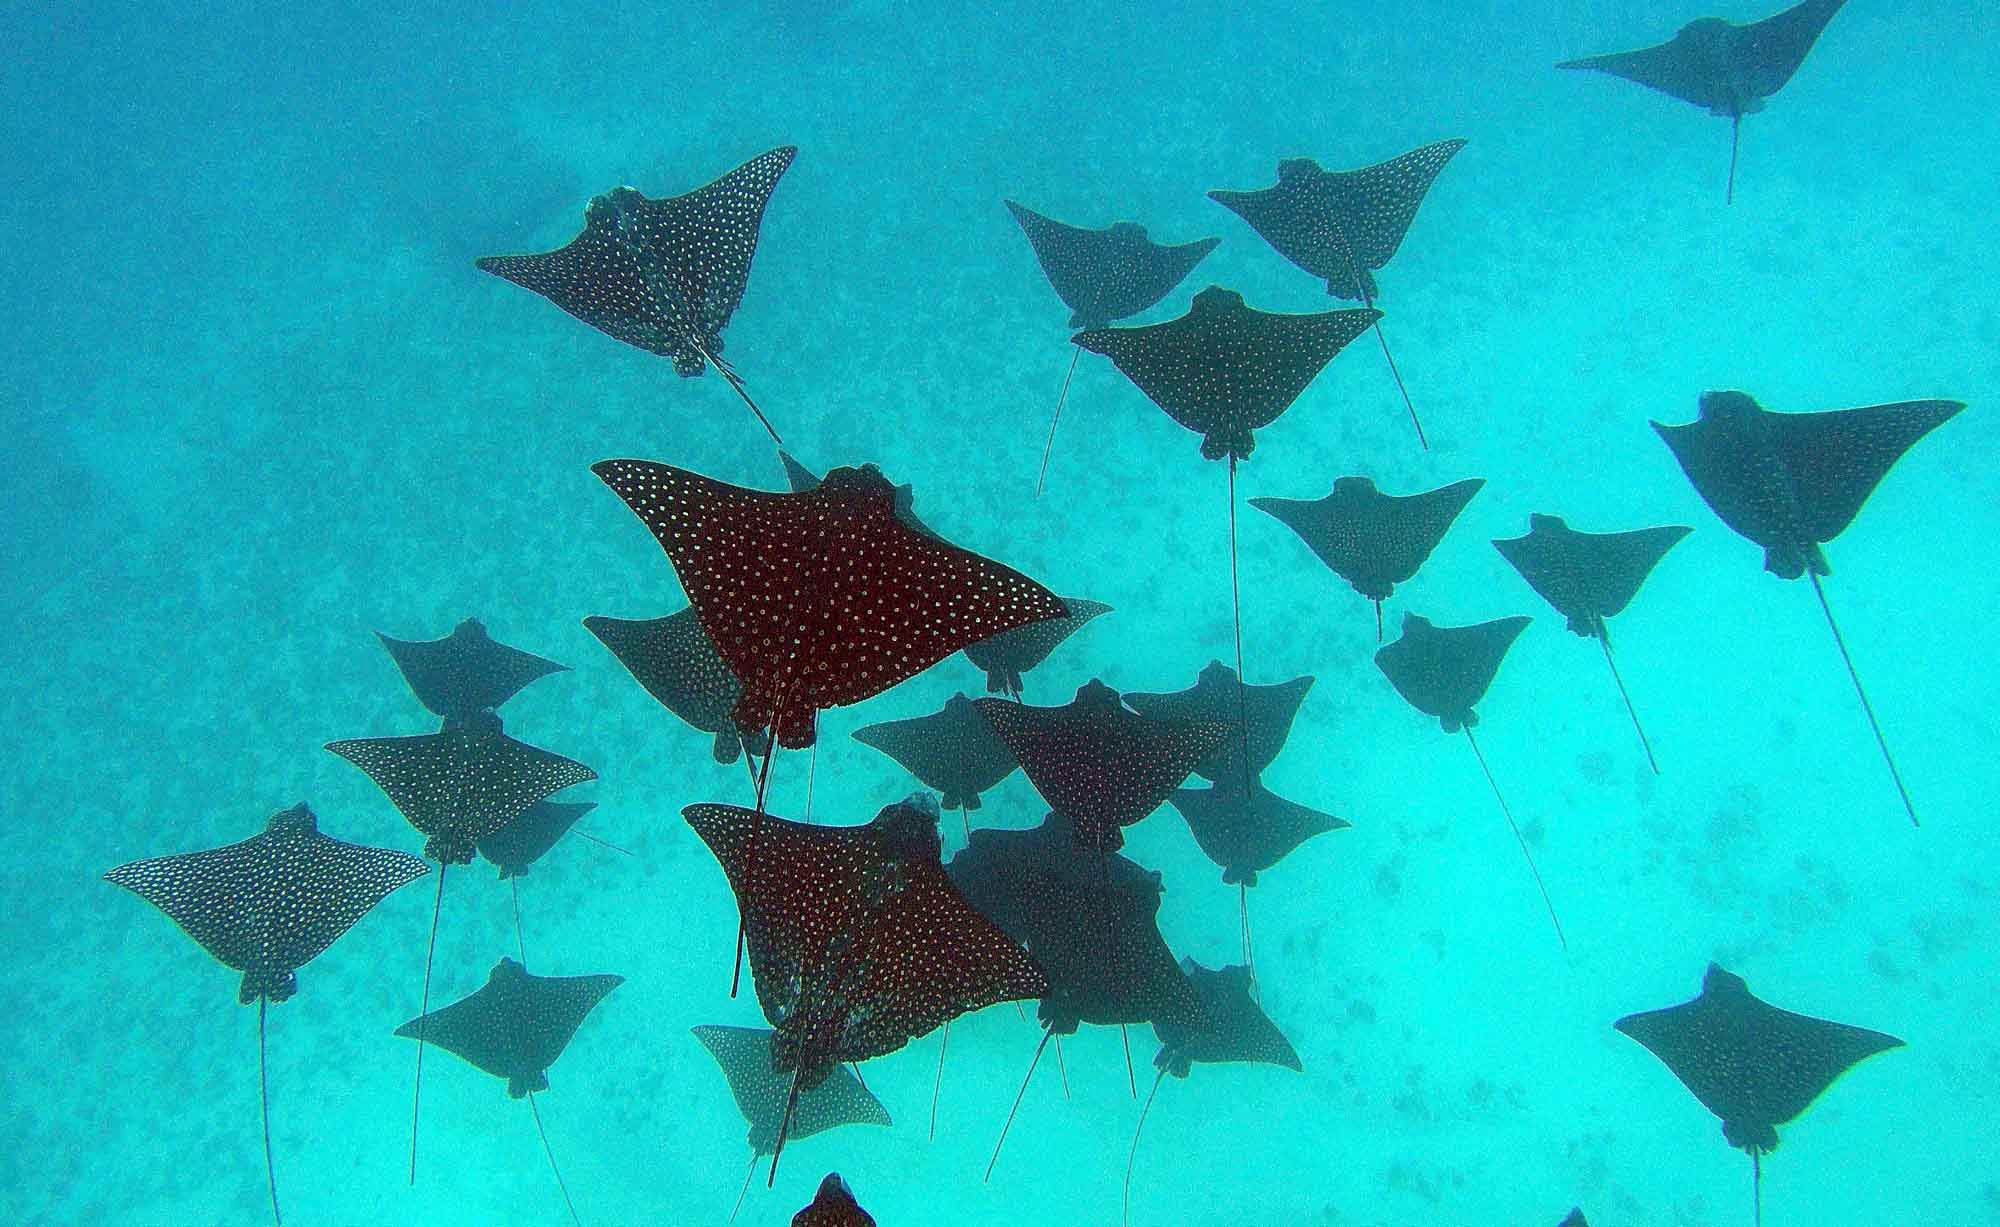 Marine species SNorkeling Diving Private Tours Wildlife Boat Moorea Ocean Adventures Sharks rays Birds Turtles Dolphins Whales